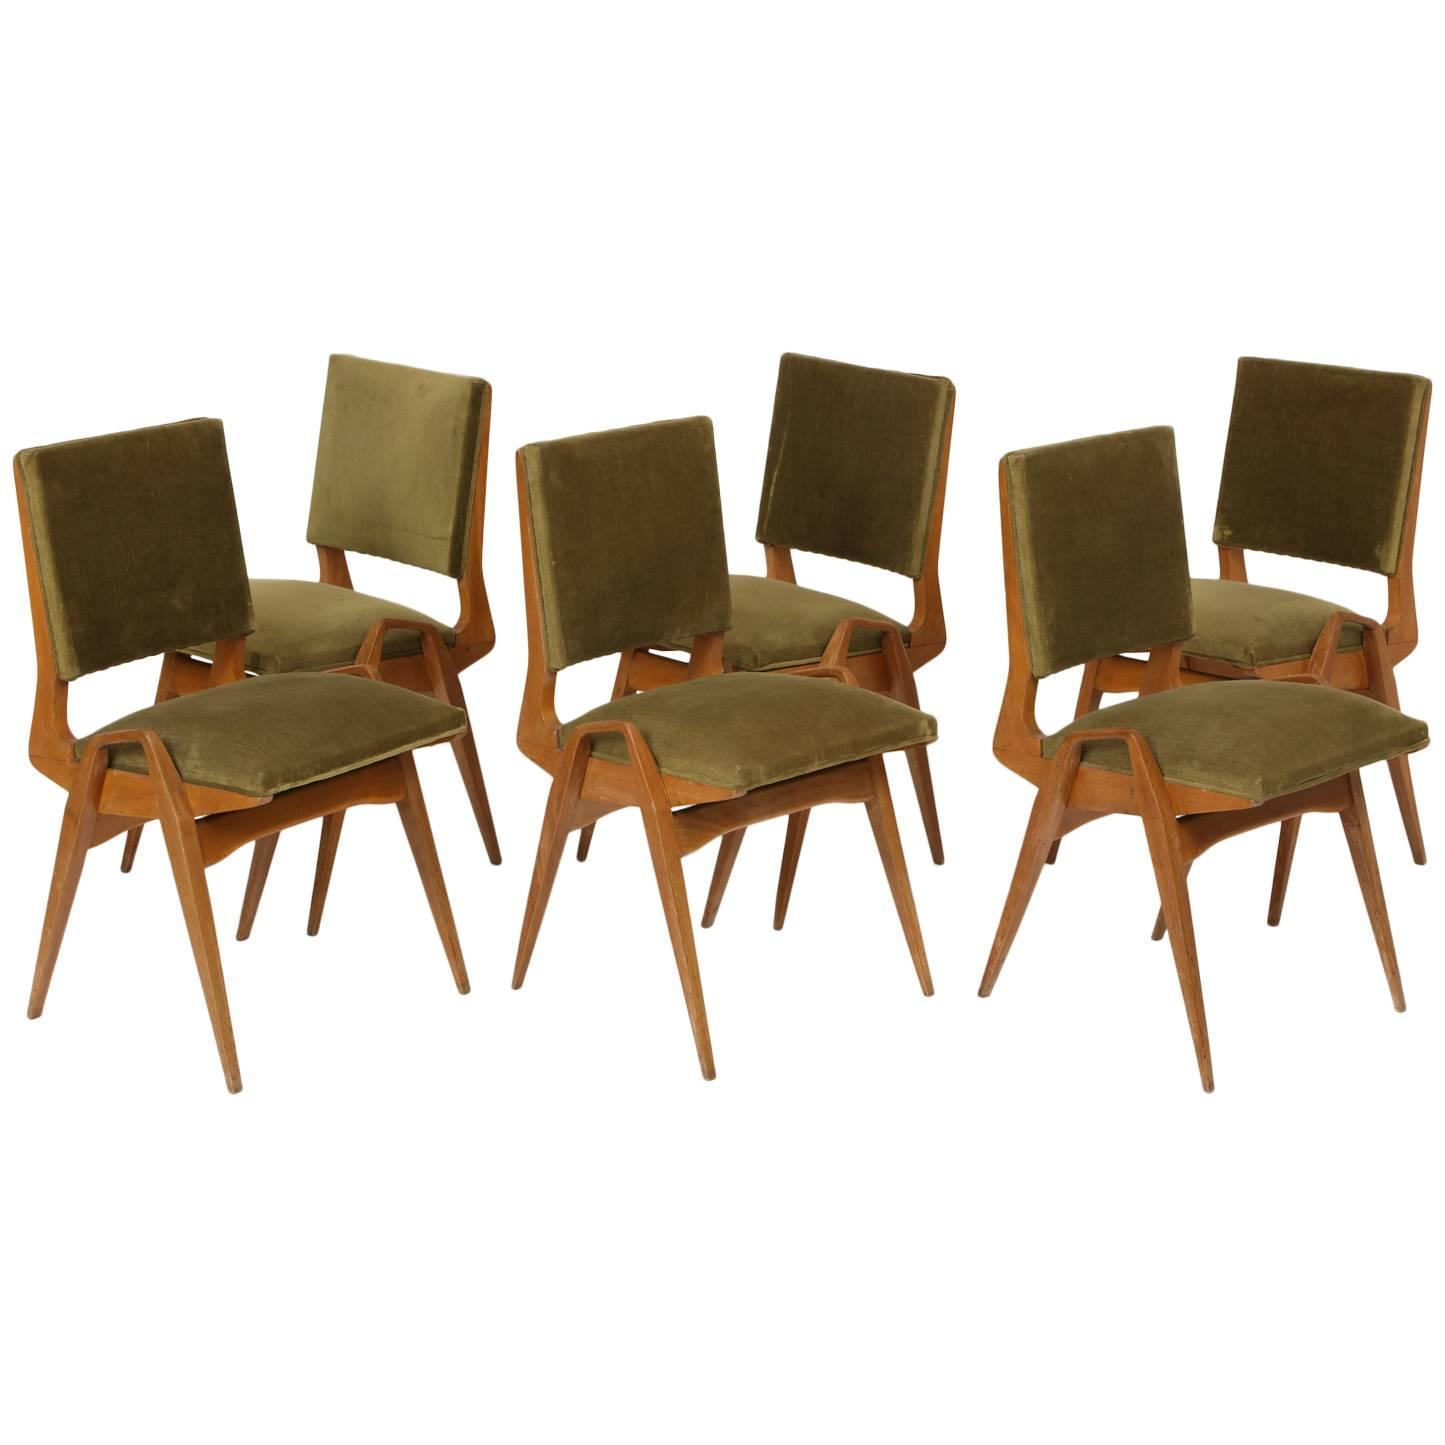 French Mid Century Dining Chairs 1950s Maurice Pre Architectural